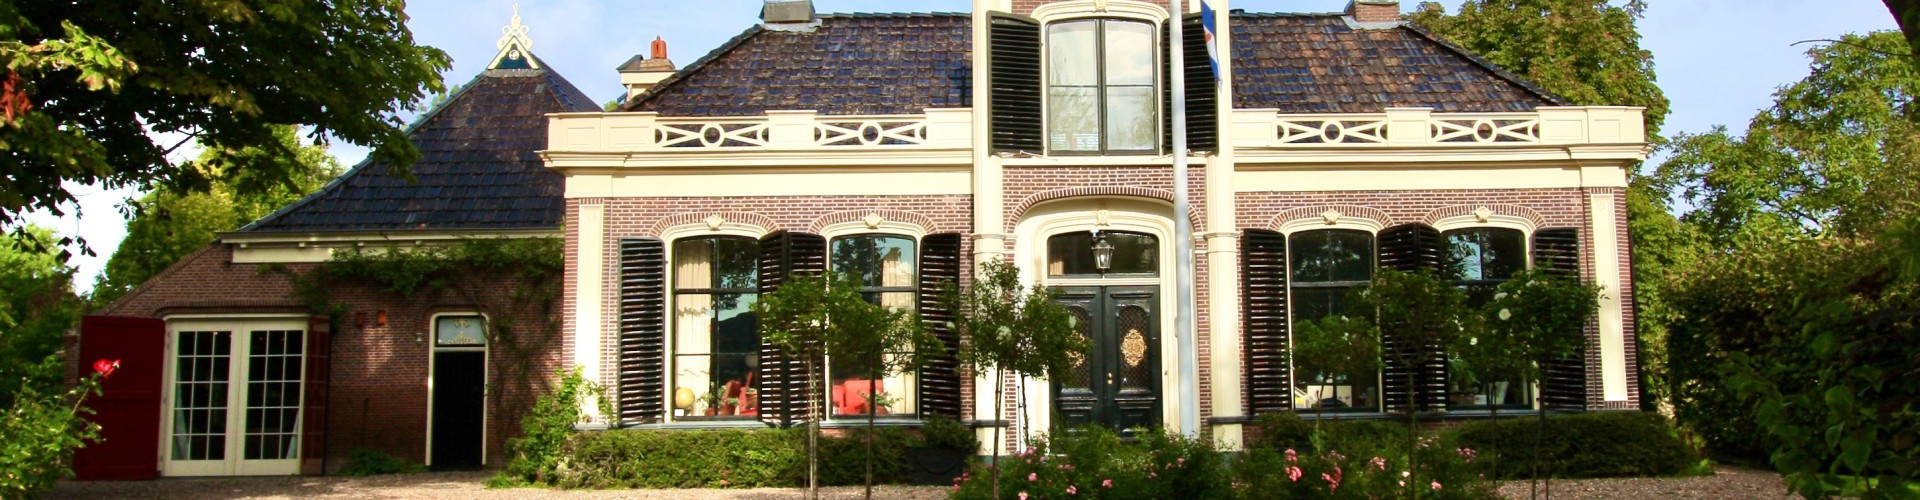 Bed and Breakfast Leeuwarden Friesland